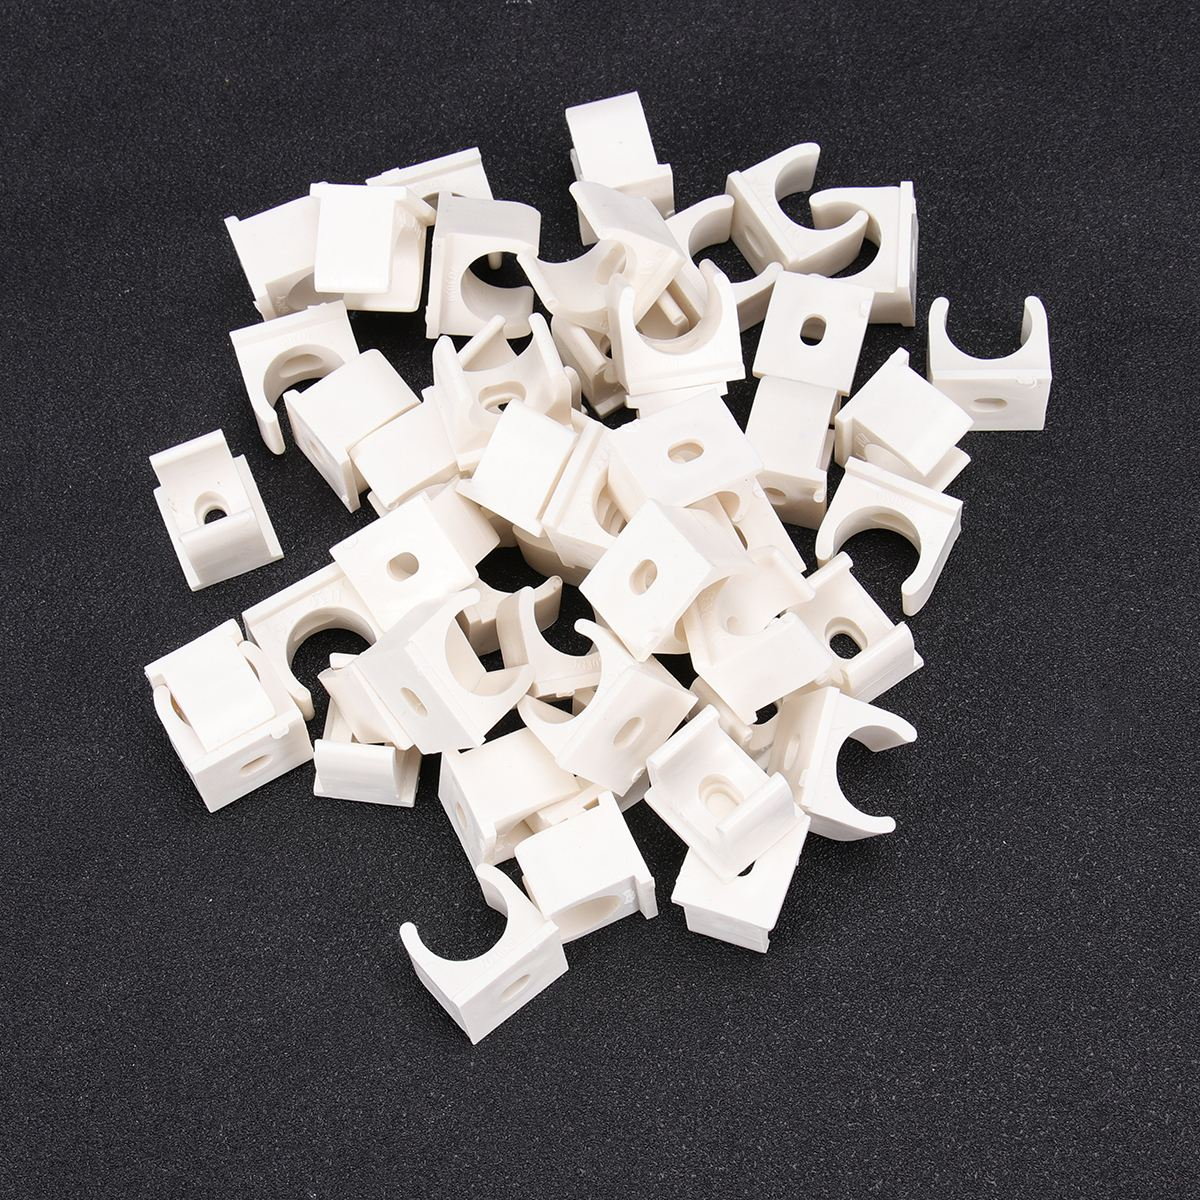 50pcs U Shape 16/20/25/32/40MM PVC Pipe Clamp Fixed Pipe Support Corrosion Resistant Riding Horse Clamp Clasp Hoop Home Hardware image